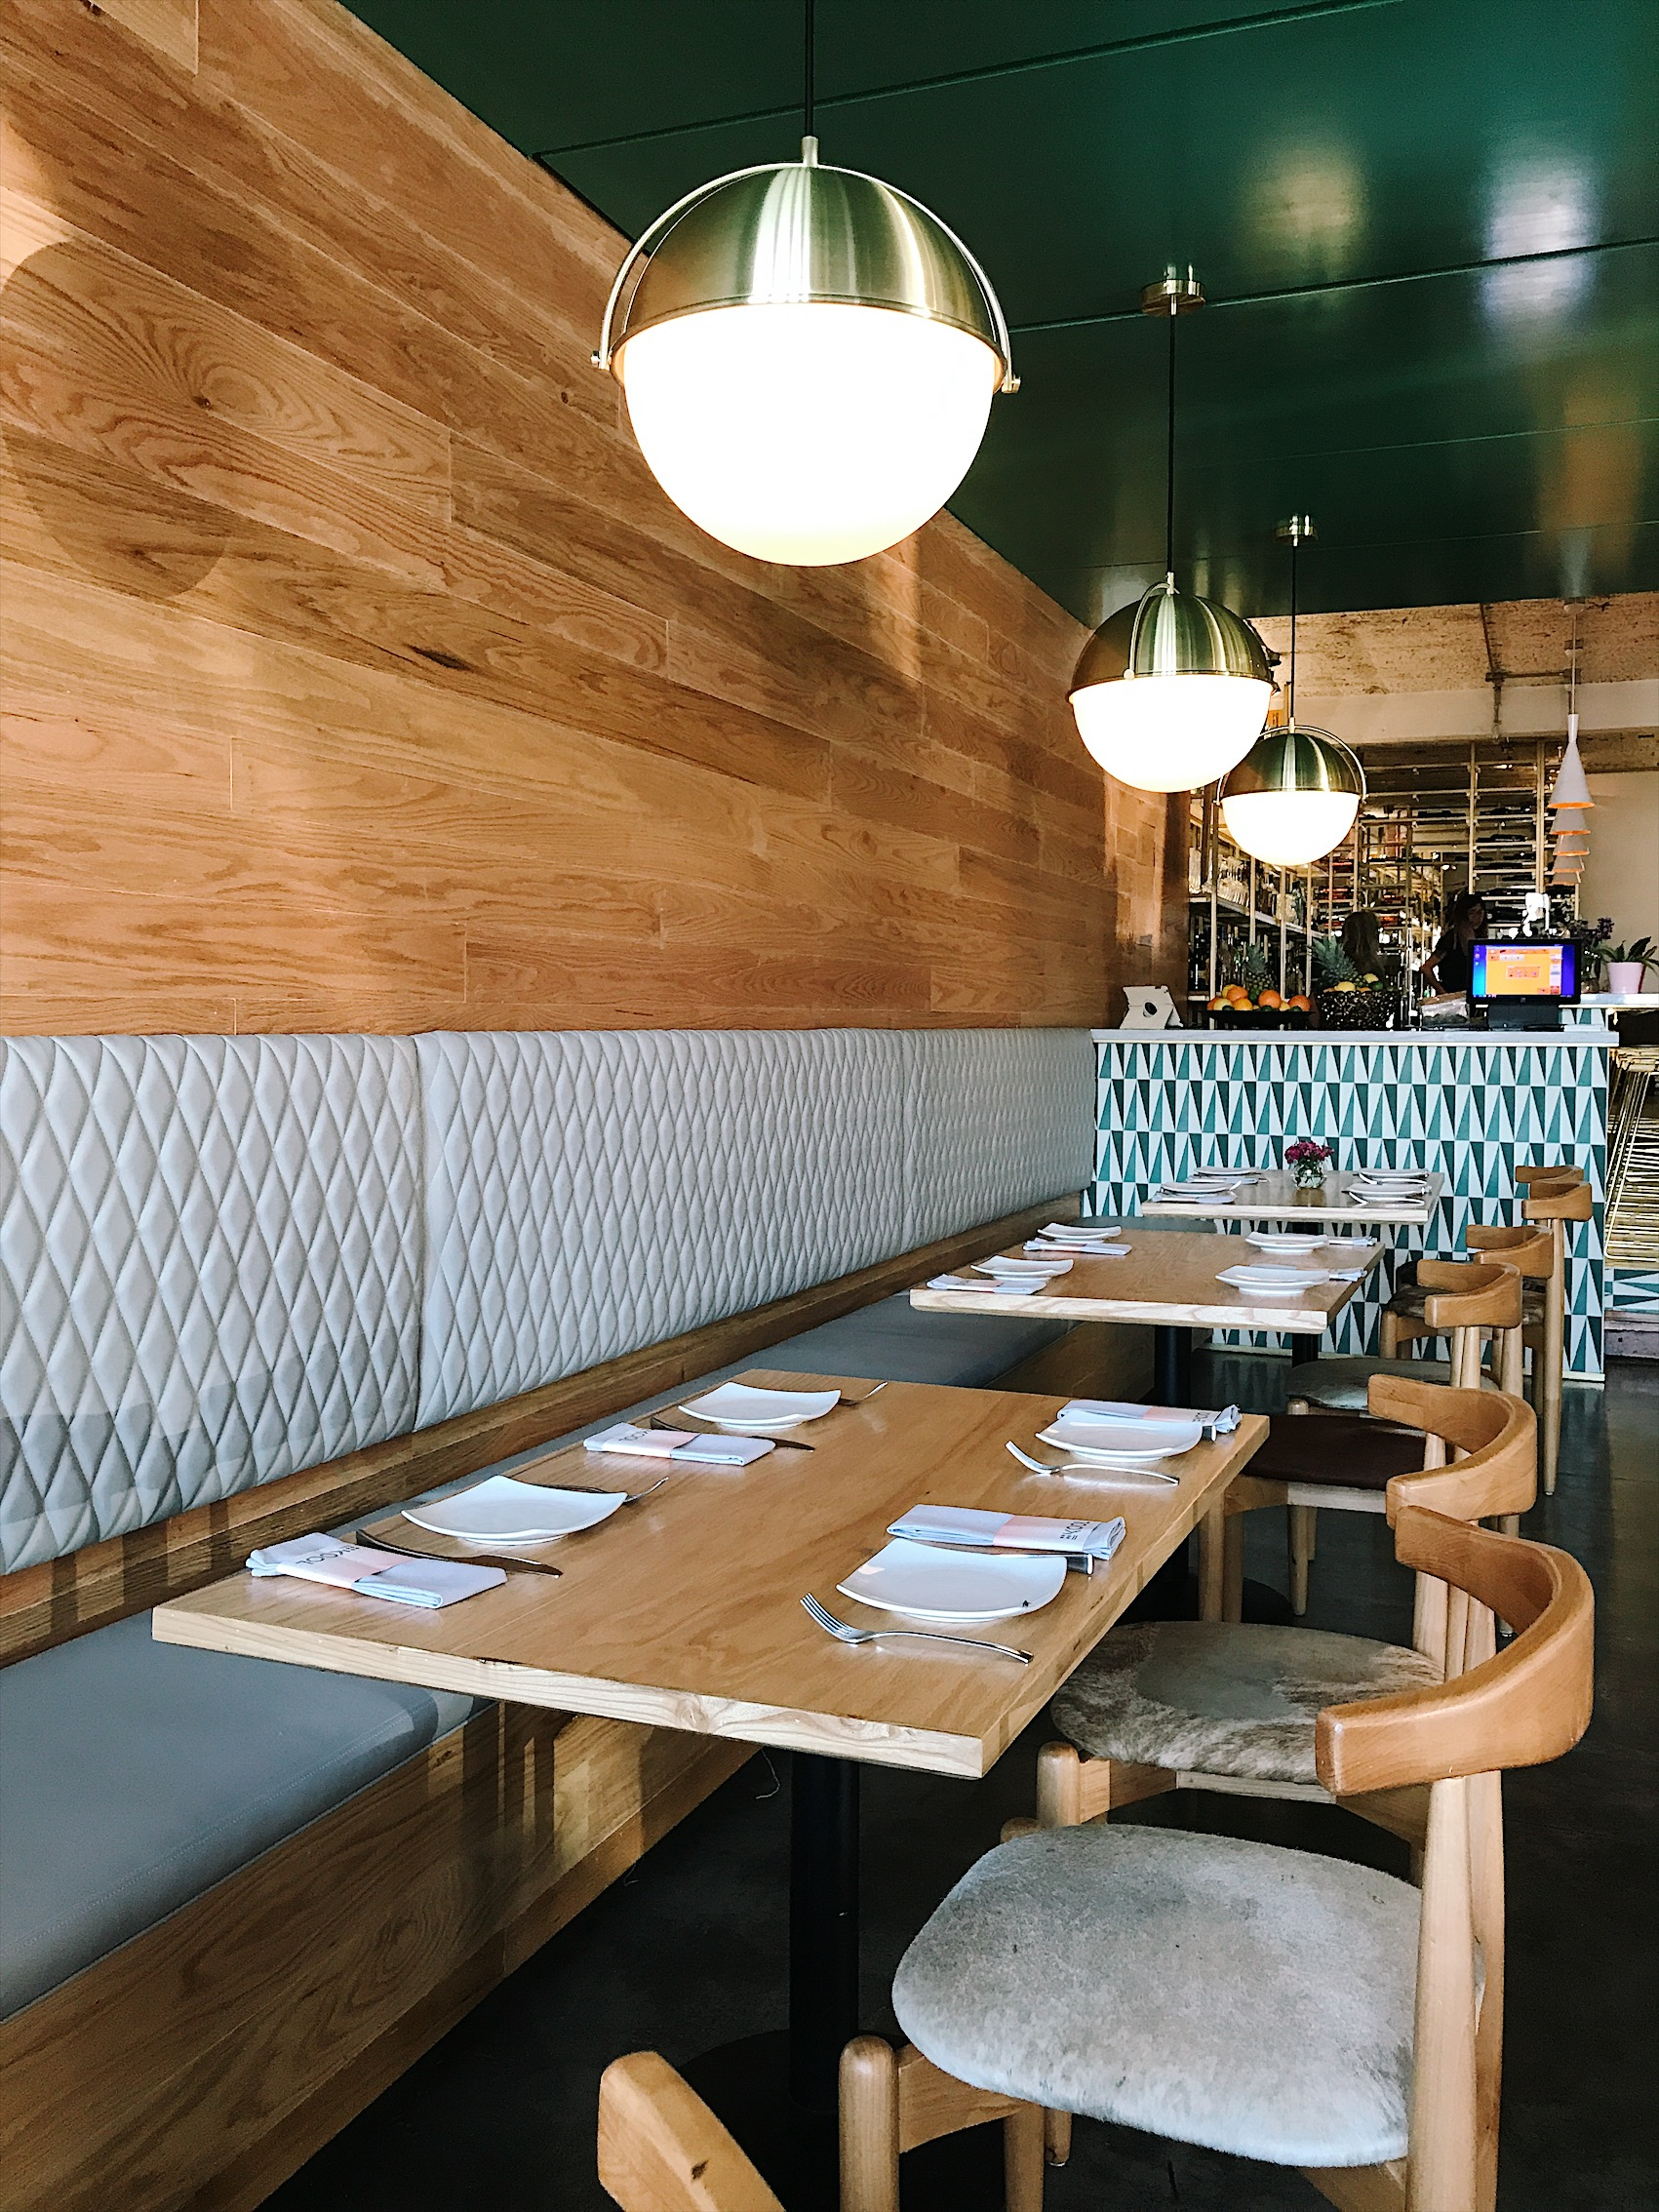 Interiors Cuisine The New Kool Of Tijuana Sophisticated Interiors Paired With Local